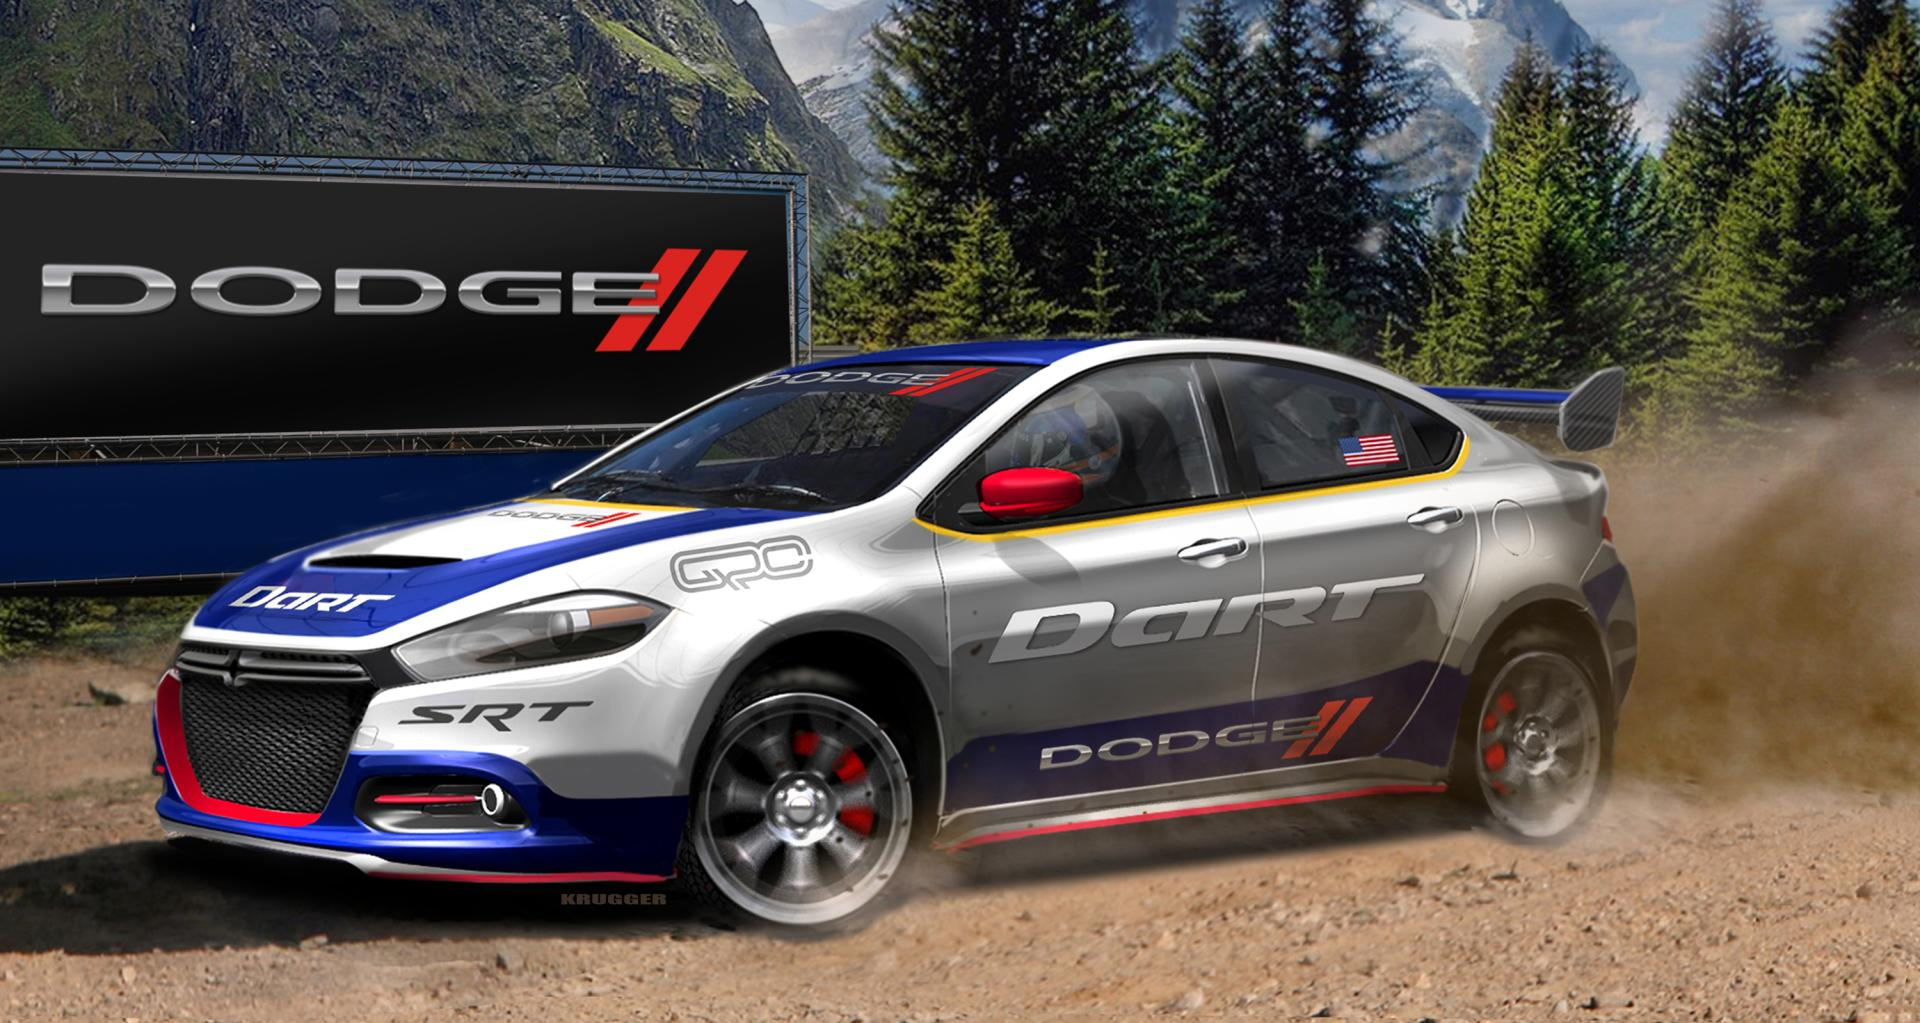 2013 Dodge Dart Rally Car News and Information, Research, and History